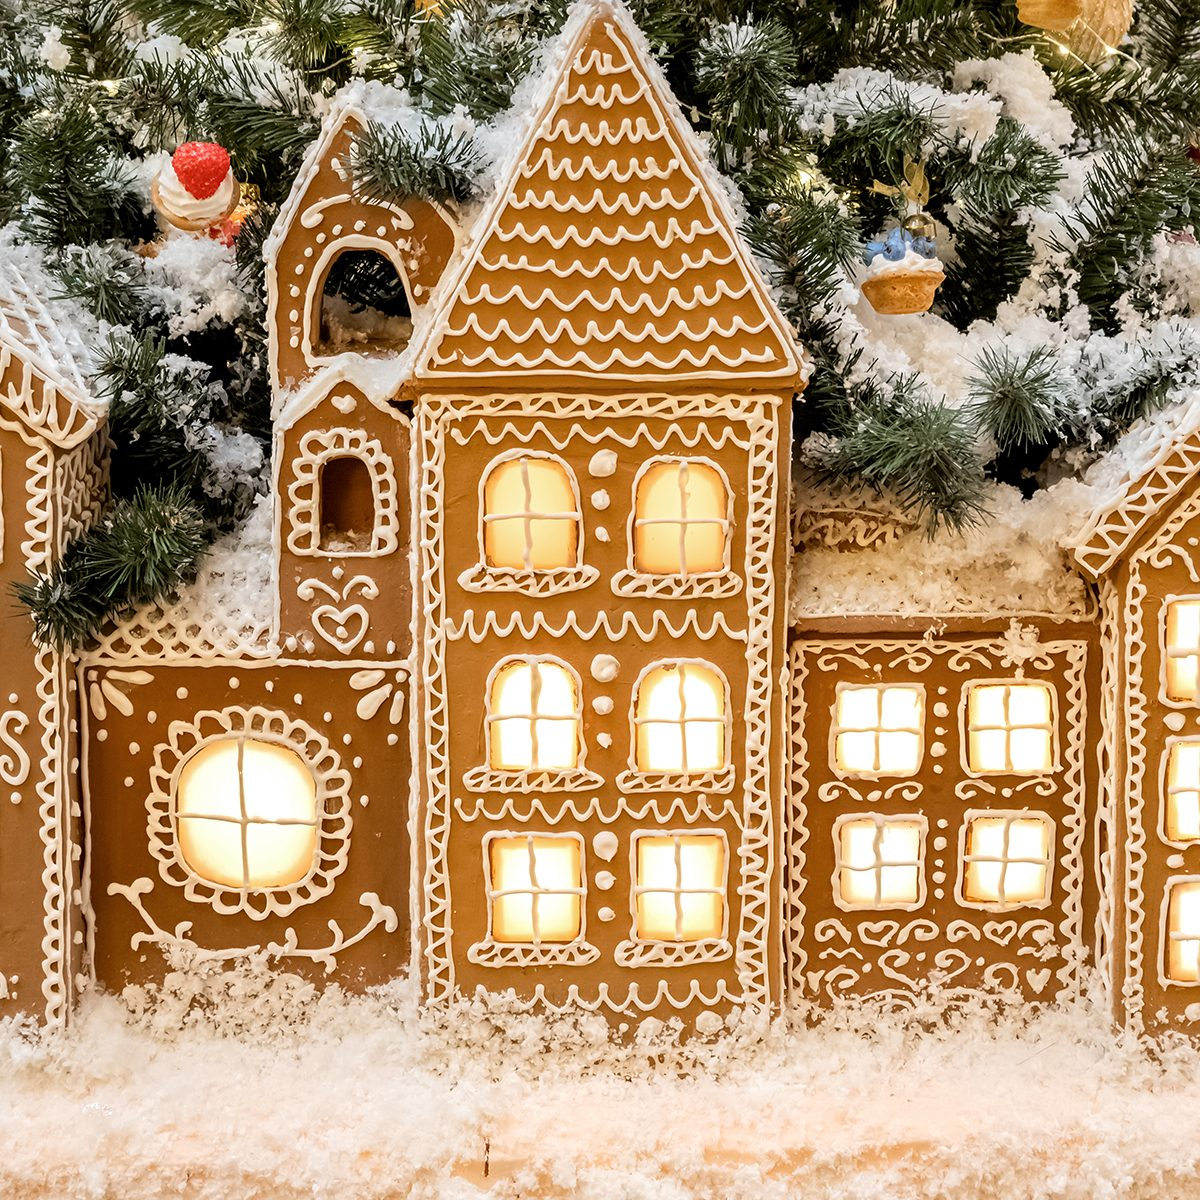 Christmas gingerbread houses with light from the windows standing in a row holiday background.